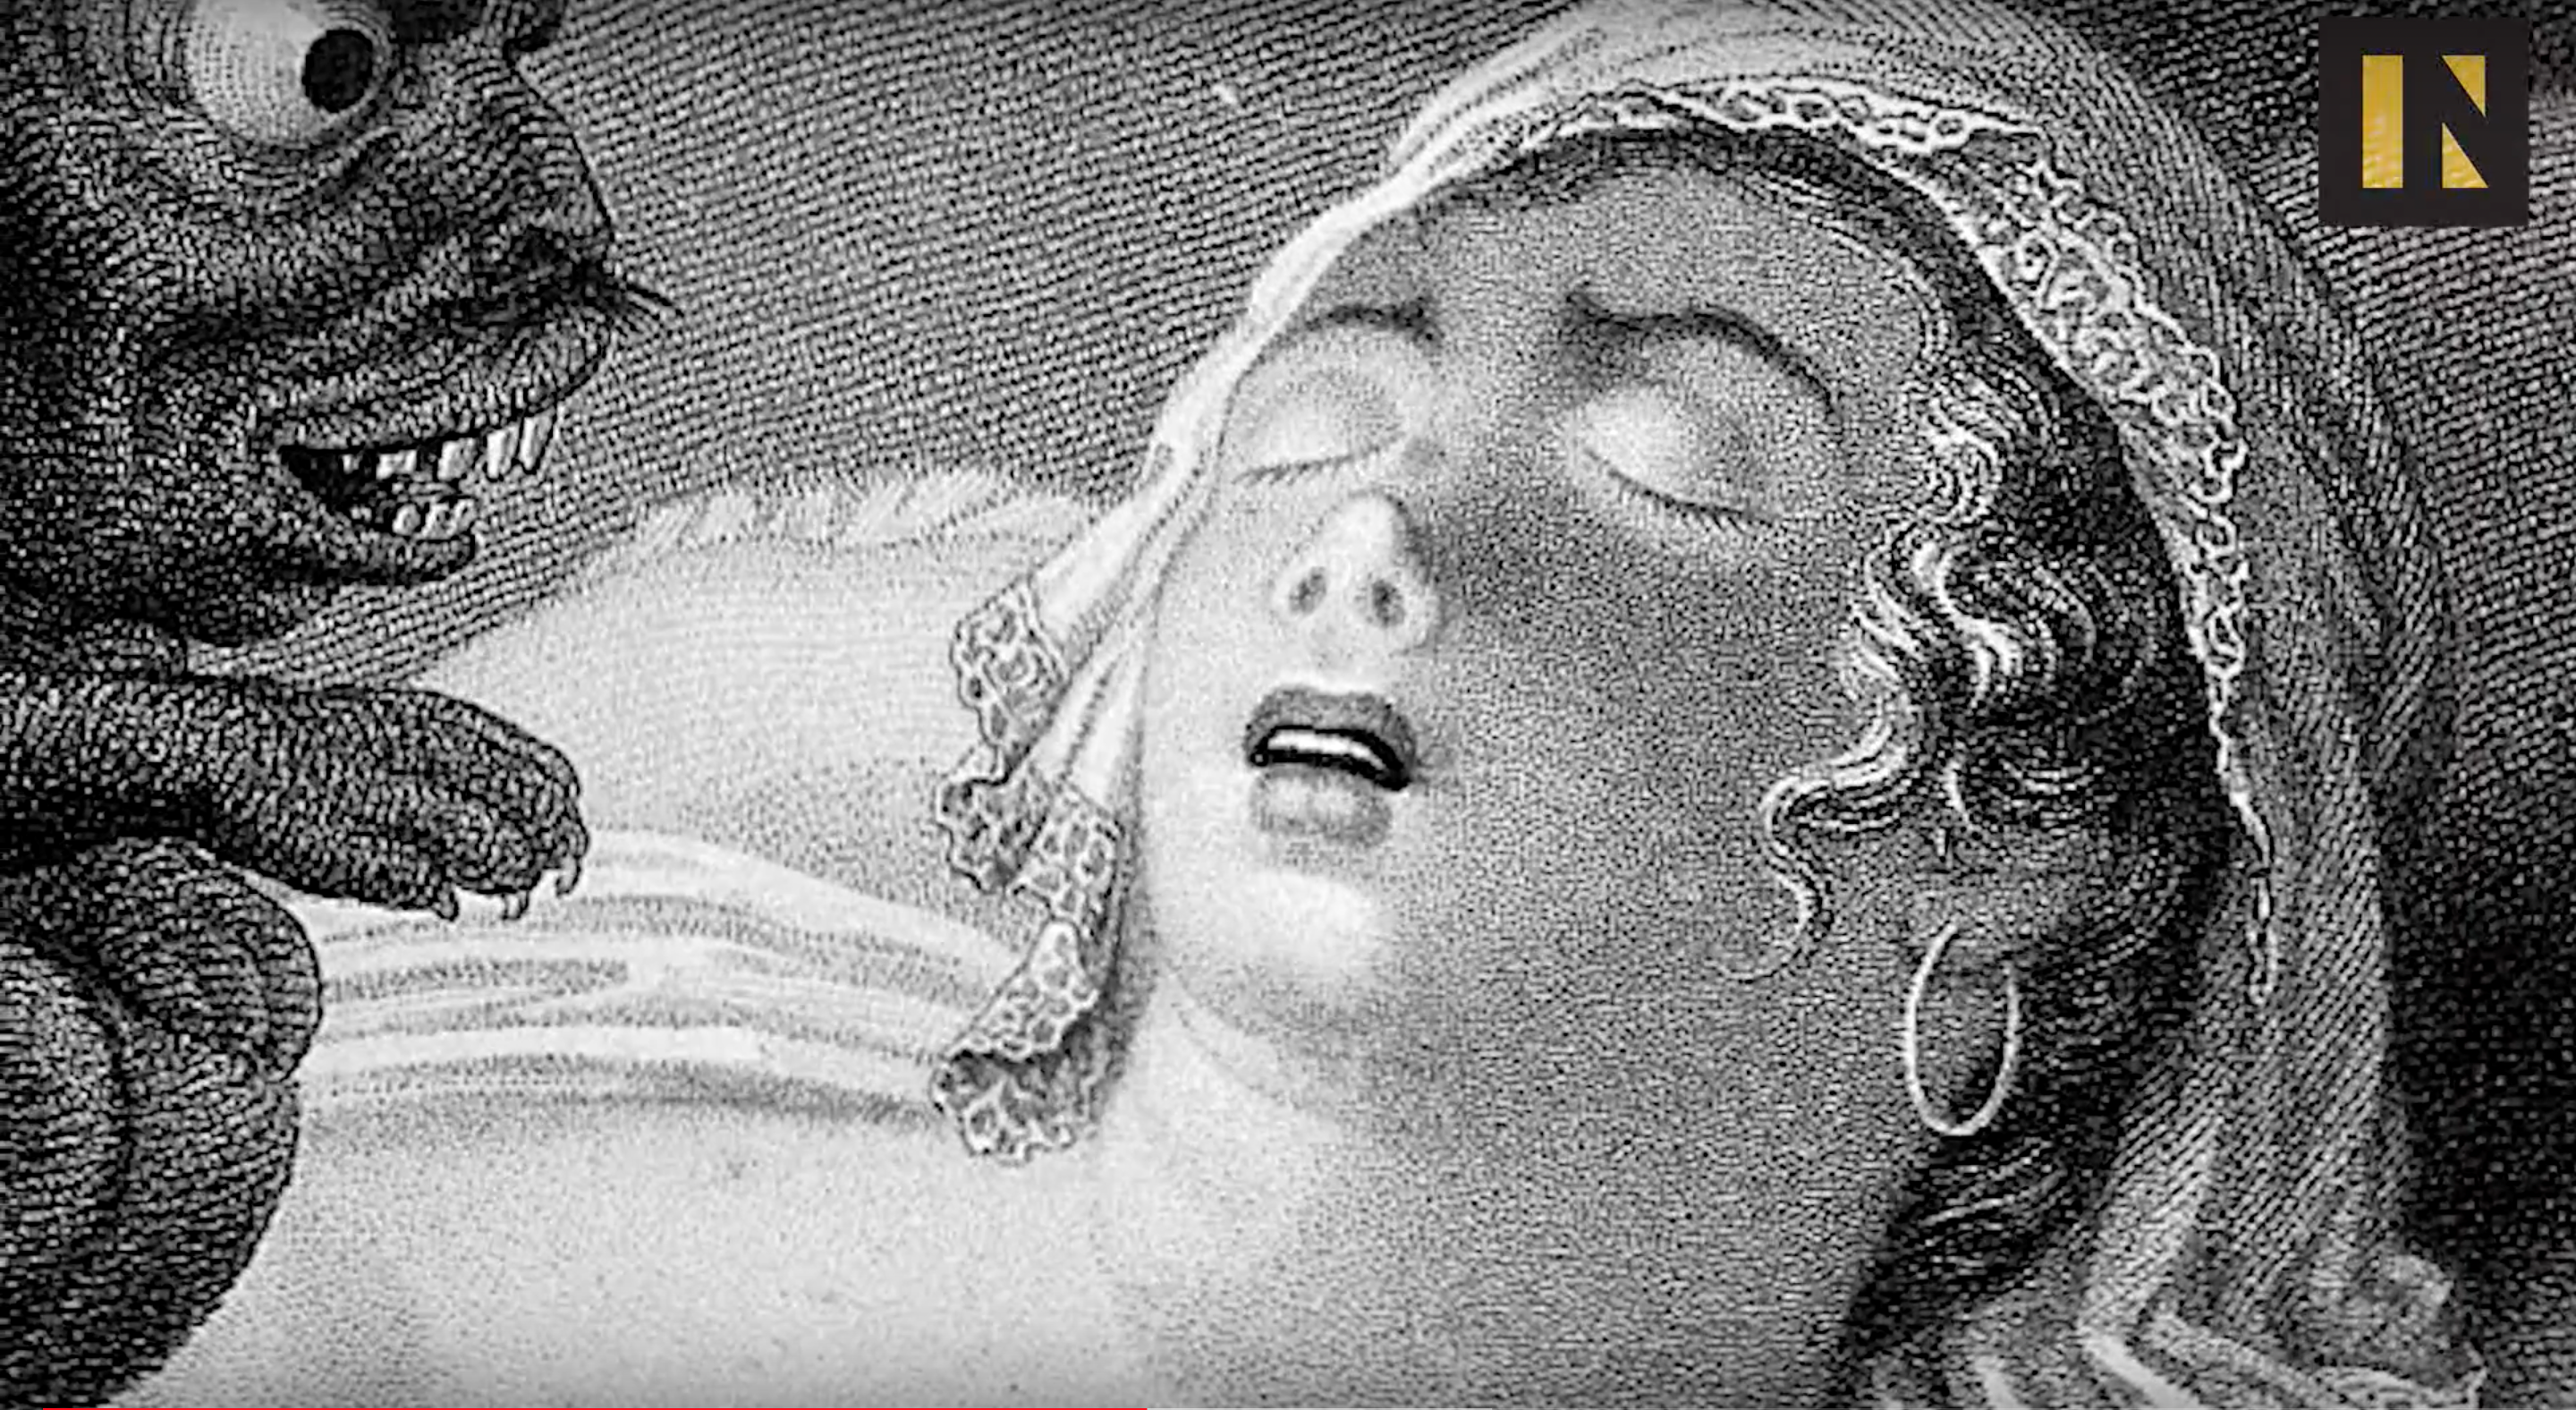 What Causes Sleep Paralysis? Science Blames Terrors on the